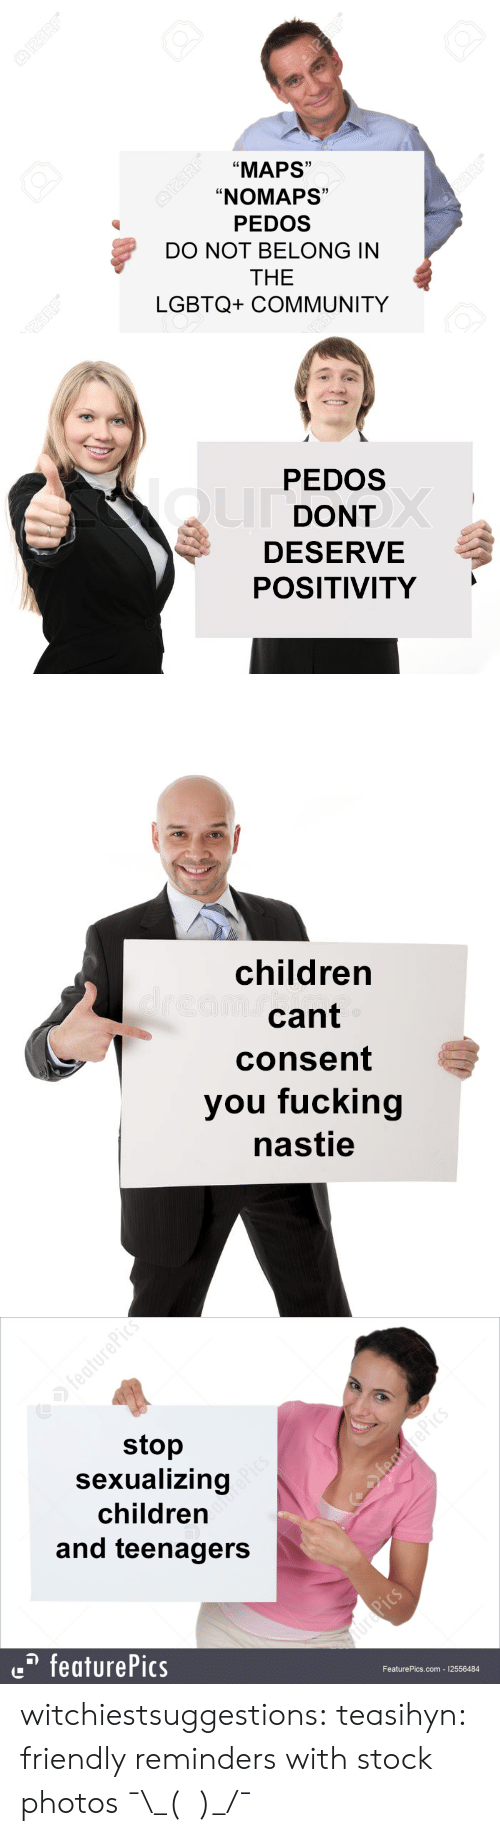 "reminders: ""MAPS""  ""NOMAPS""  PEDOS  DO NOT BELONG IN  THE  LGBTQ+ COMMUNITY  Ld  1)  C0  1   PEDOS  DONT  DESERVE  POSITIVITY   children  cant  consent  you fucking  nastie   stop  Sexualizing  children  and teenagers  featurePics  FeaturePics.com 12556484 witchiestsuggestions: teasihyn: friendly reminders with stock photos  ¯\_(ツ)_/¯"